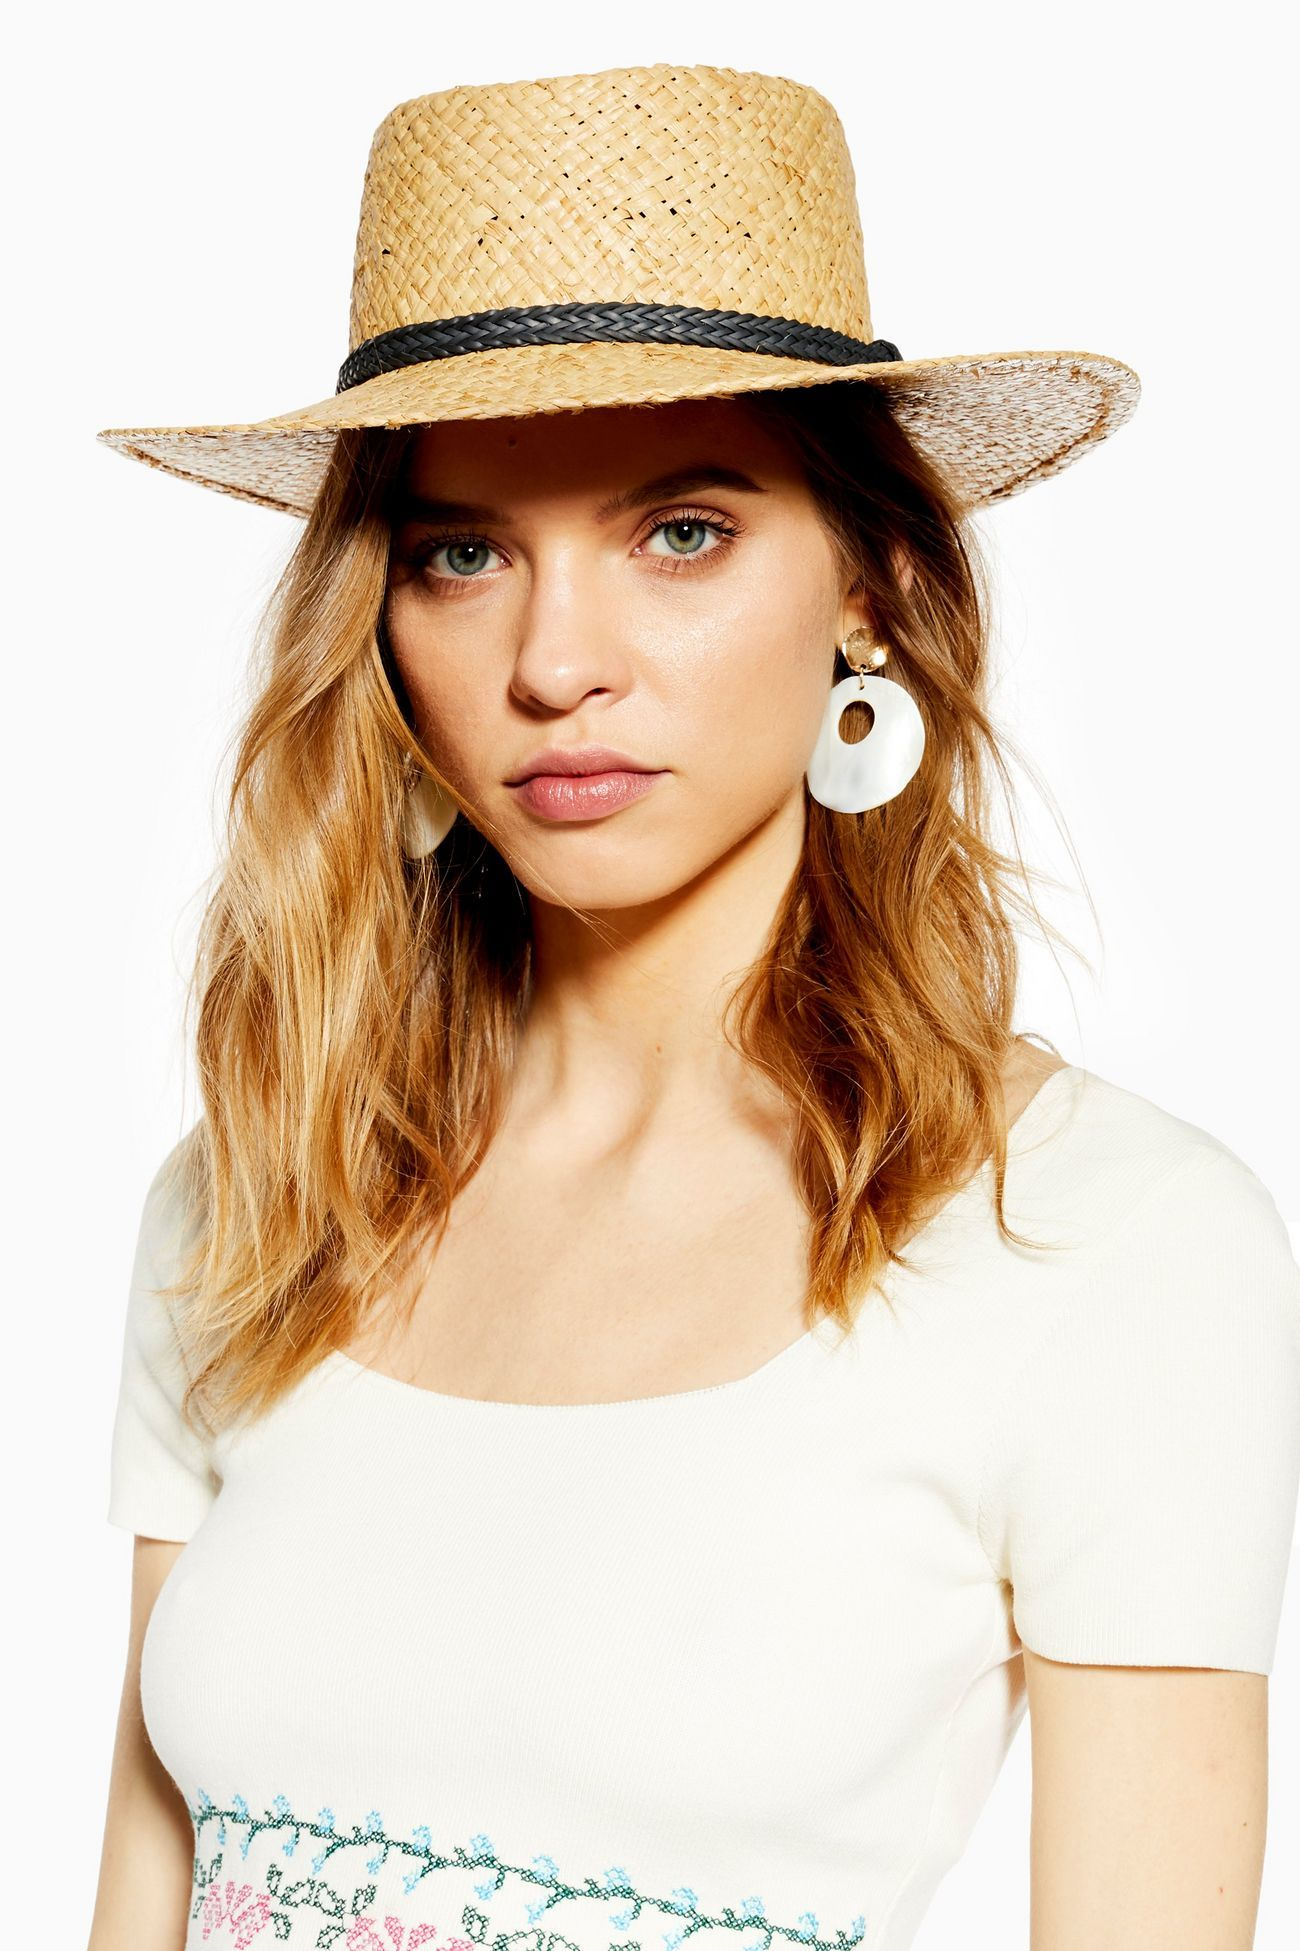 90527298fc10b This woven straw flat top hat creates stylish summertime styling. Straw  accessories are making a major impact and we just can't get enough off the  timeless ...